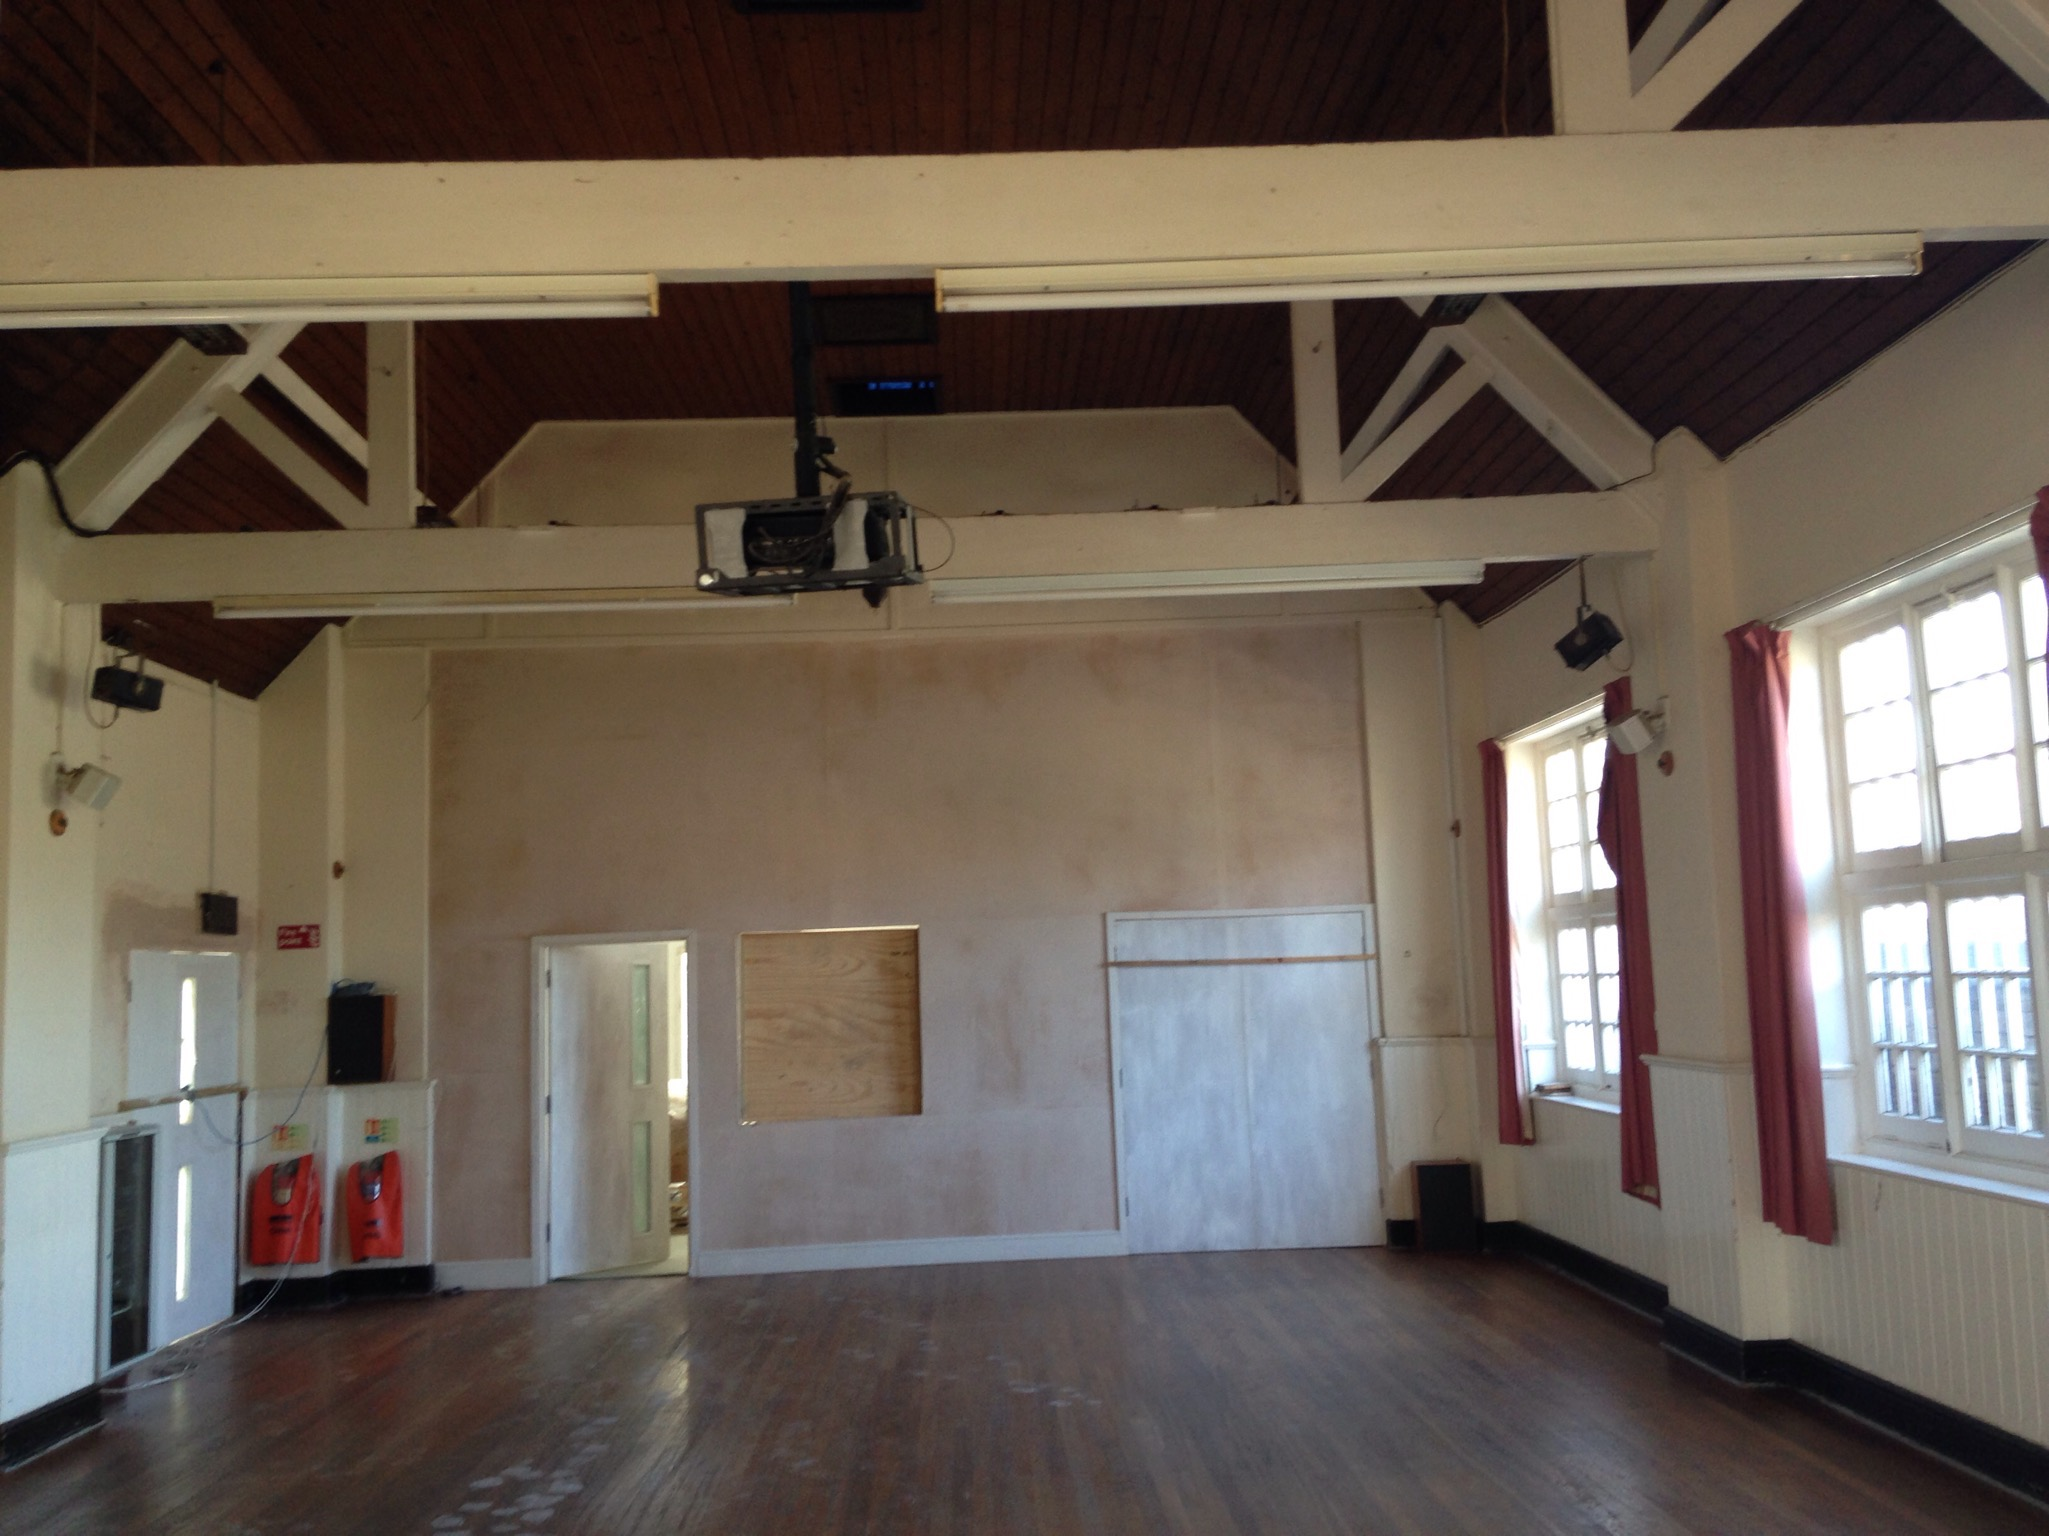 24 Aug 2016 Door & hatch to new kitchen from old hall